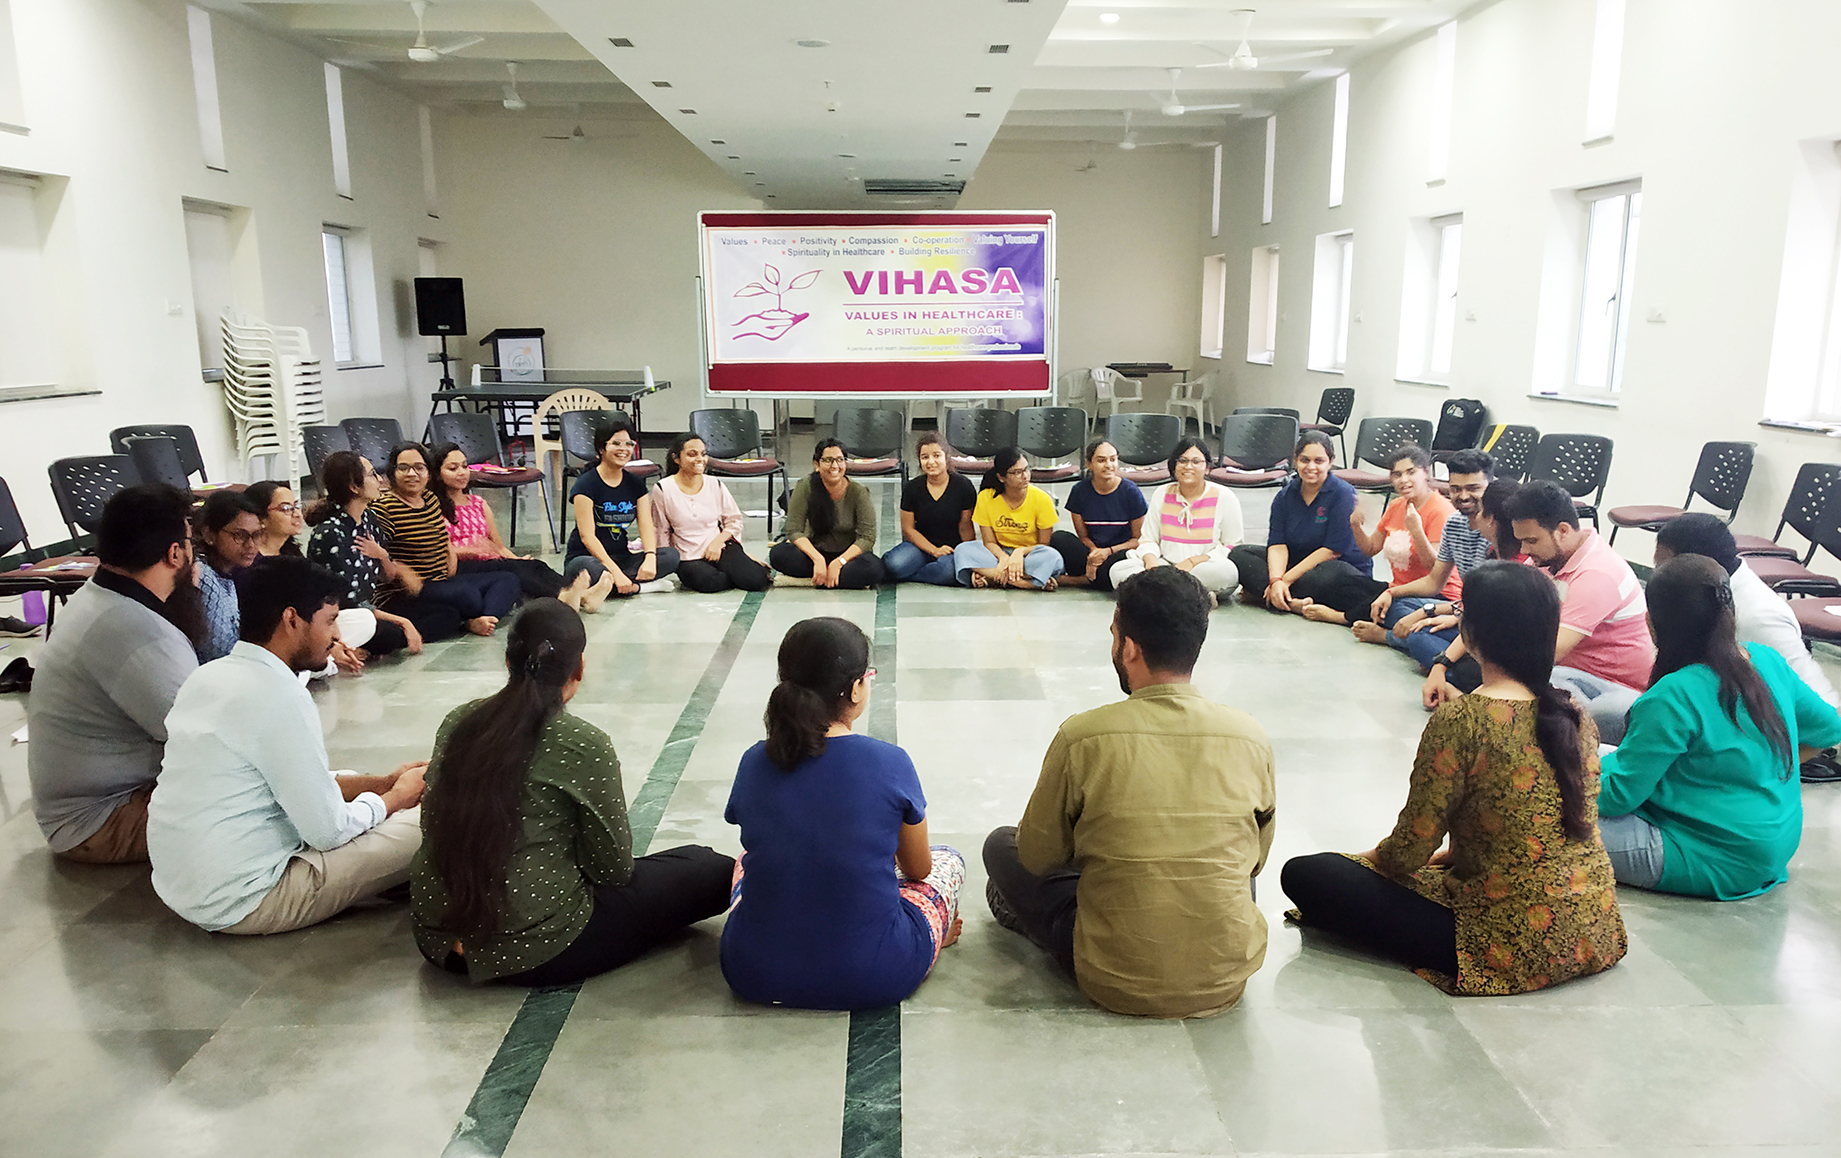 VIHASA session on Compassion